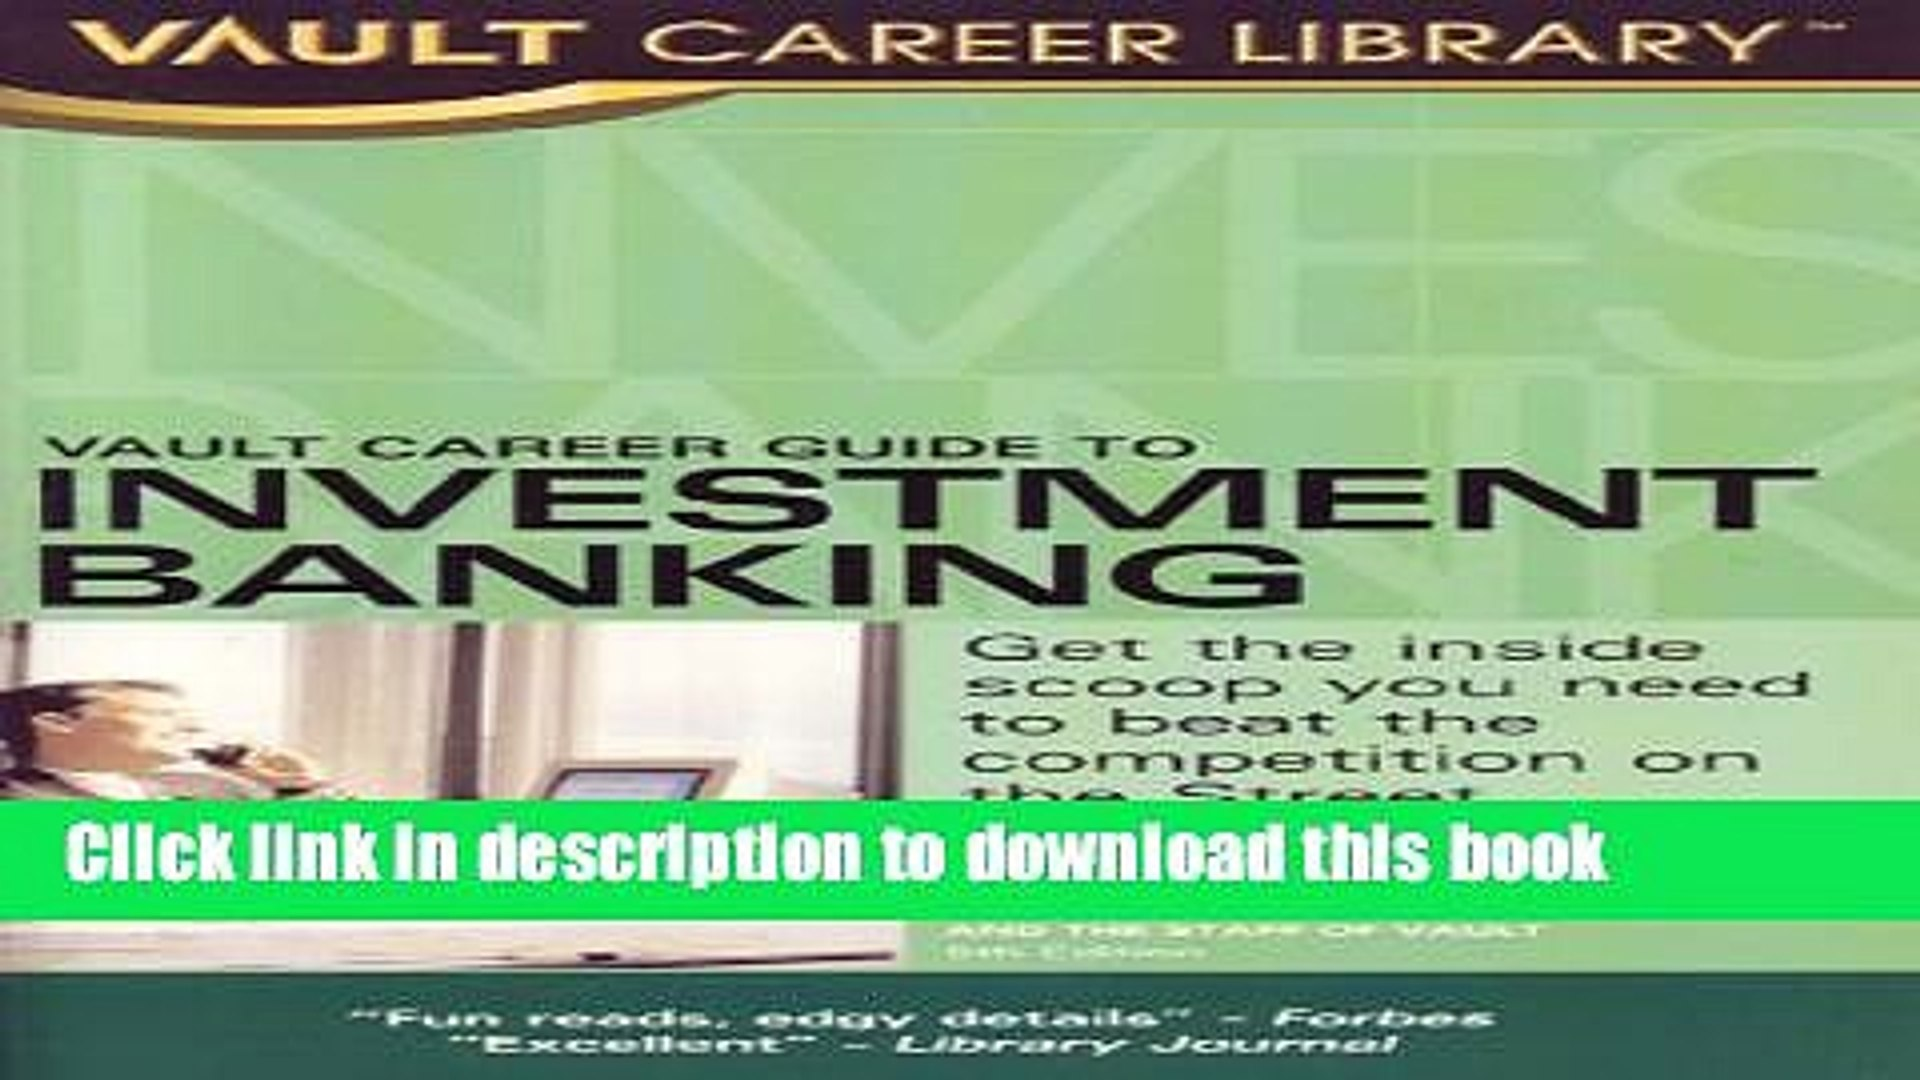 [Popular] Vault Career Guide to Investment Banking Kindle Online